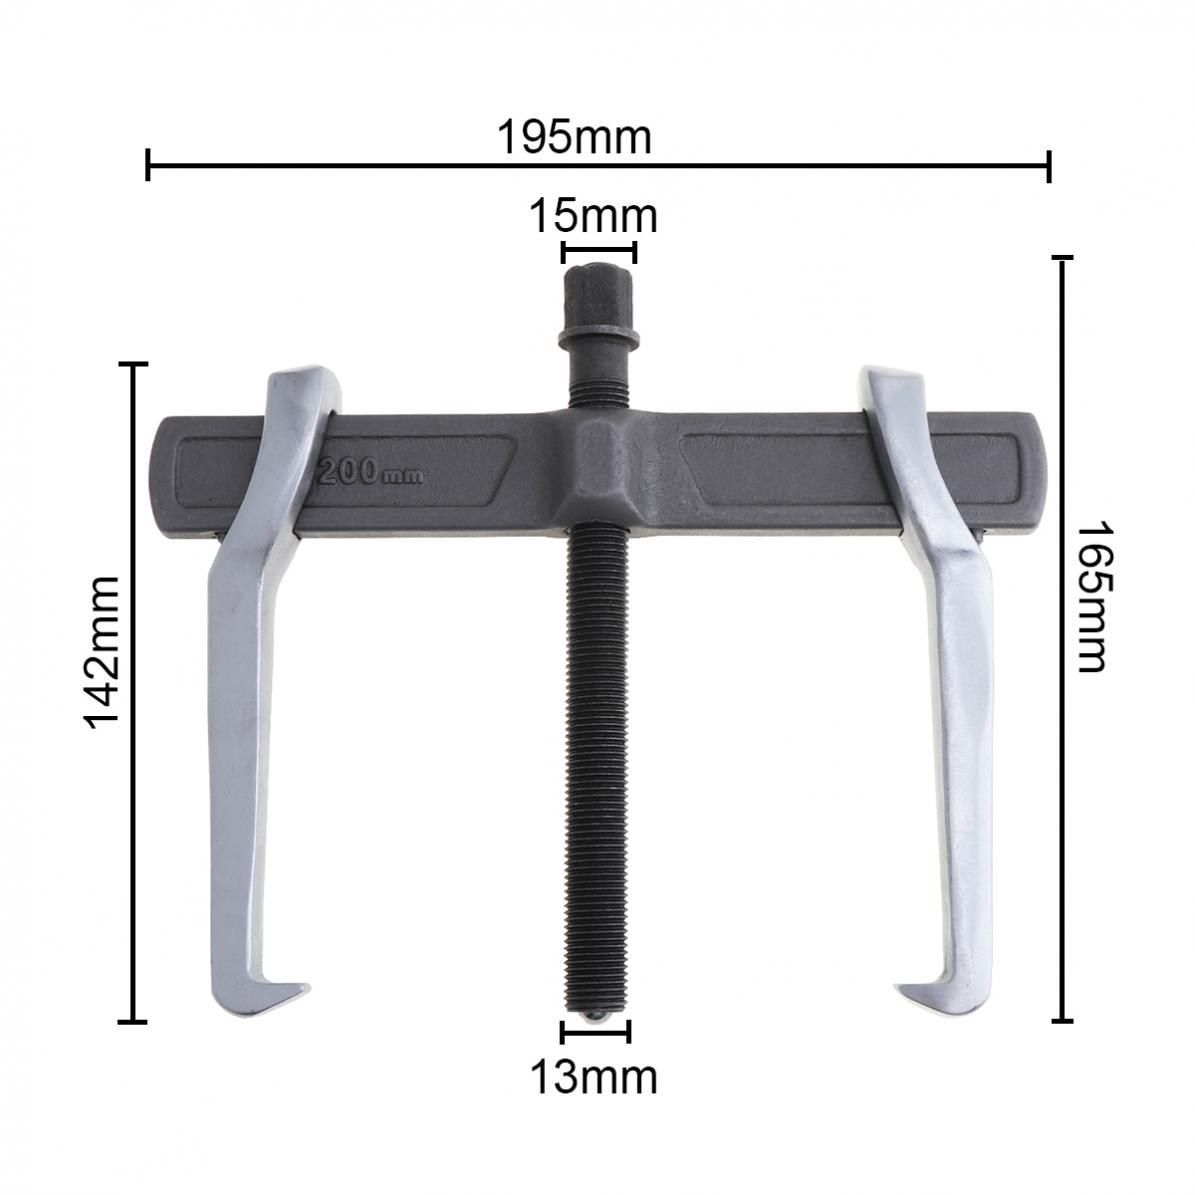 Tools : 8 Inch CR-V Single Hook Two Claws Puller Separate Lifting Device Strengthen Bearing Puller for Auto Car Repair Hand Tools